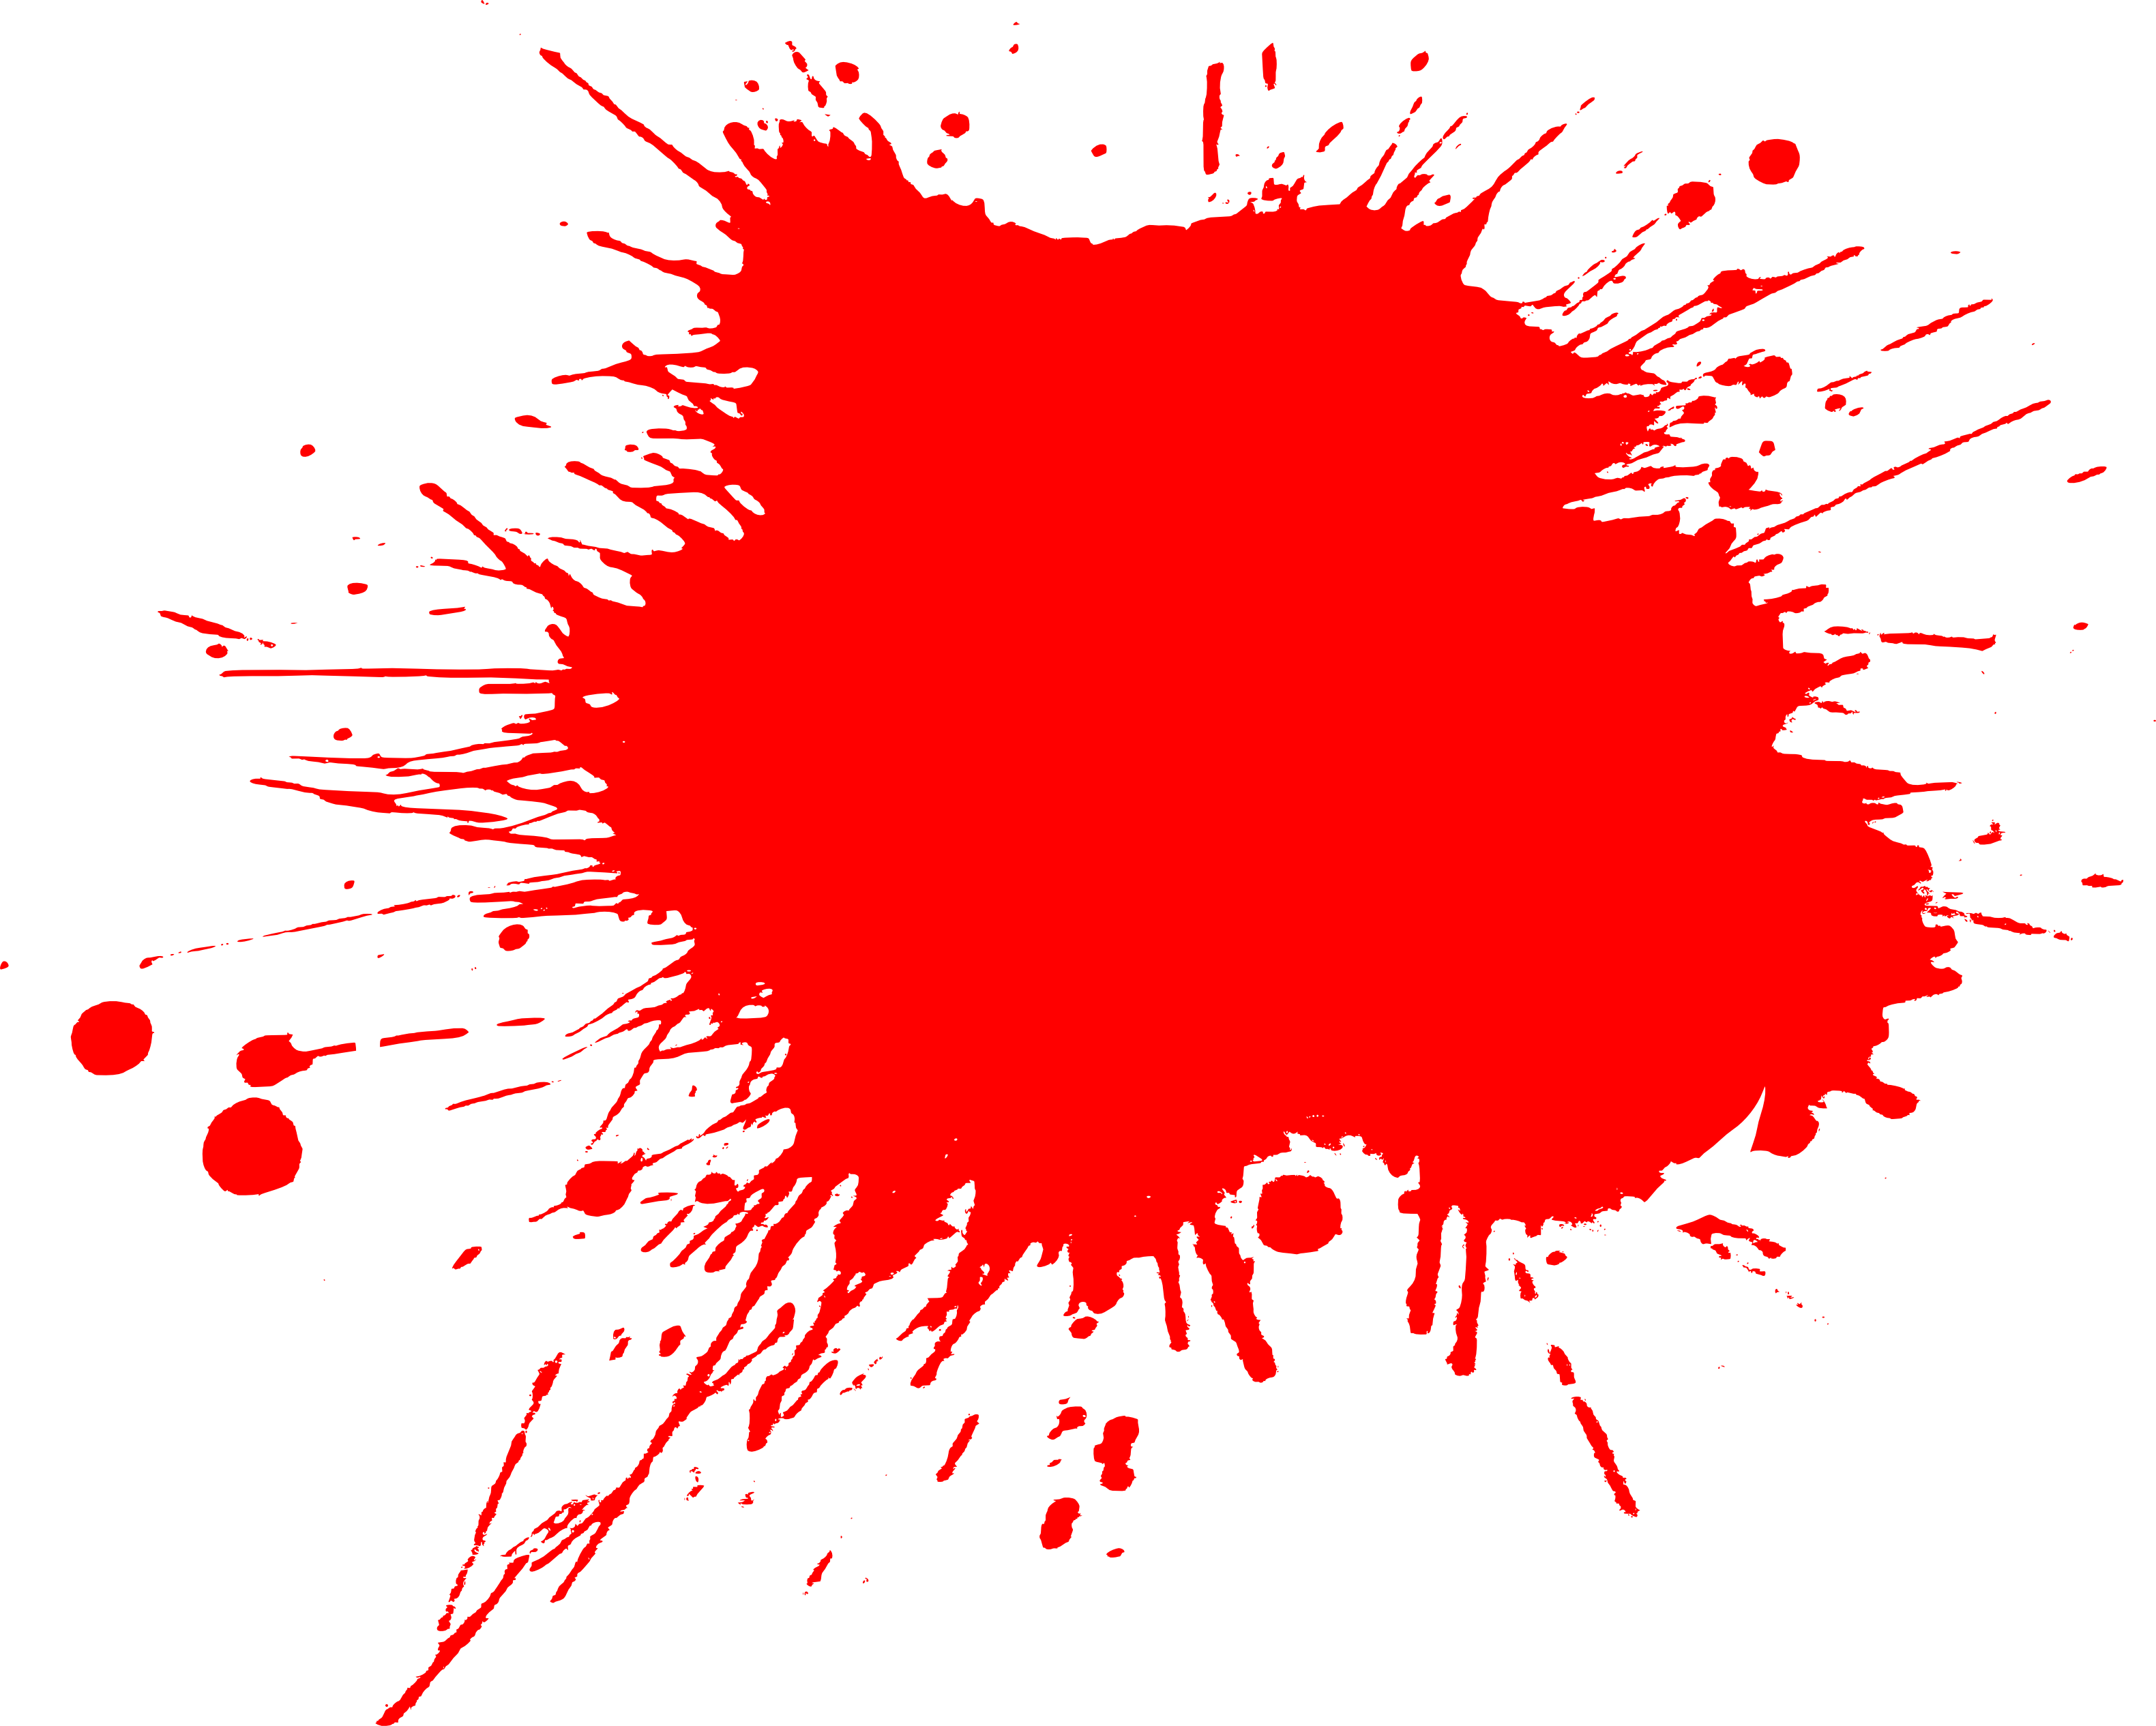 Red paint splat png. Splatter cut out transparentpng